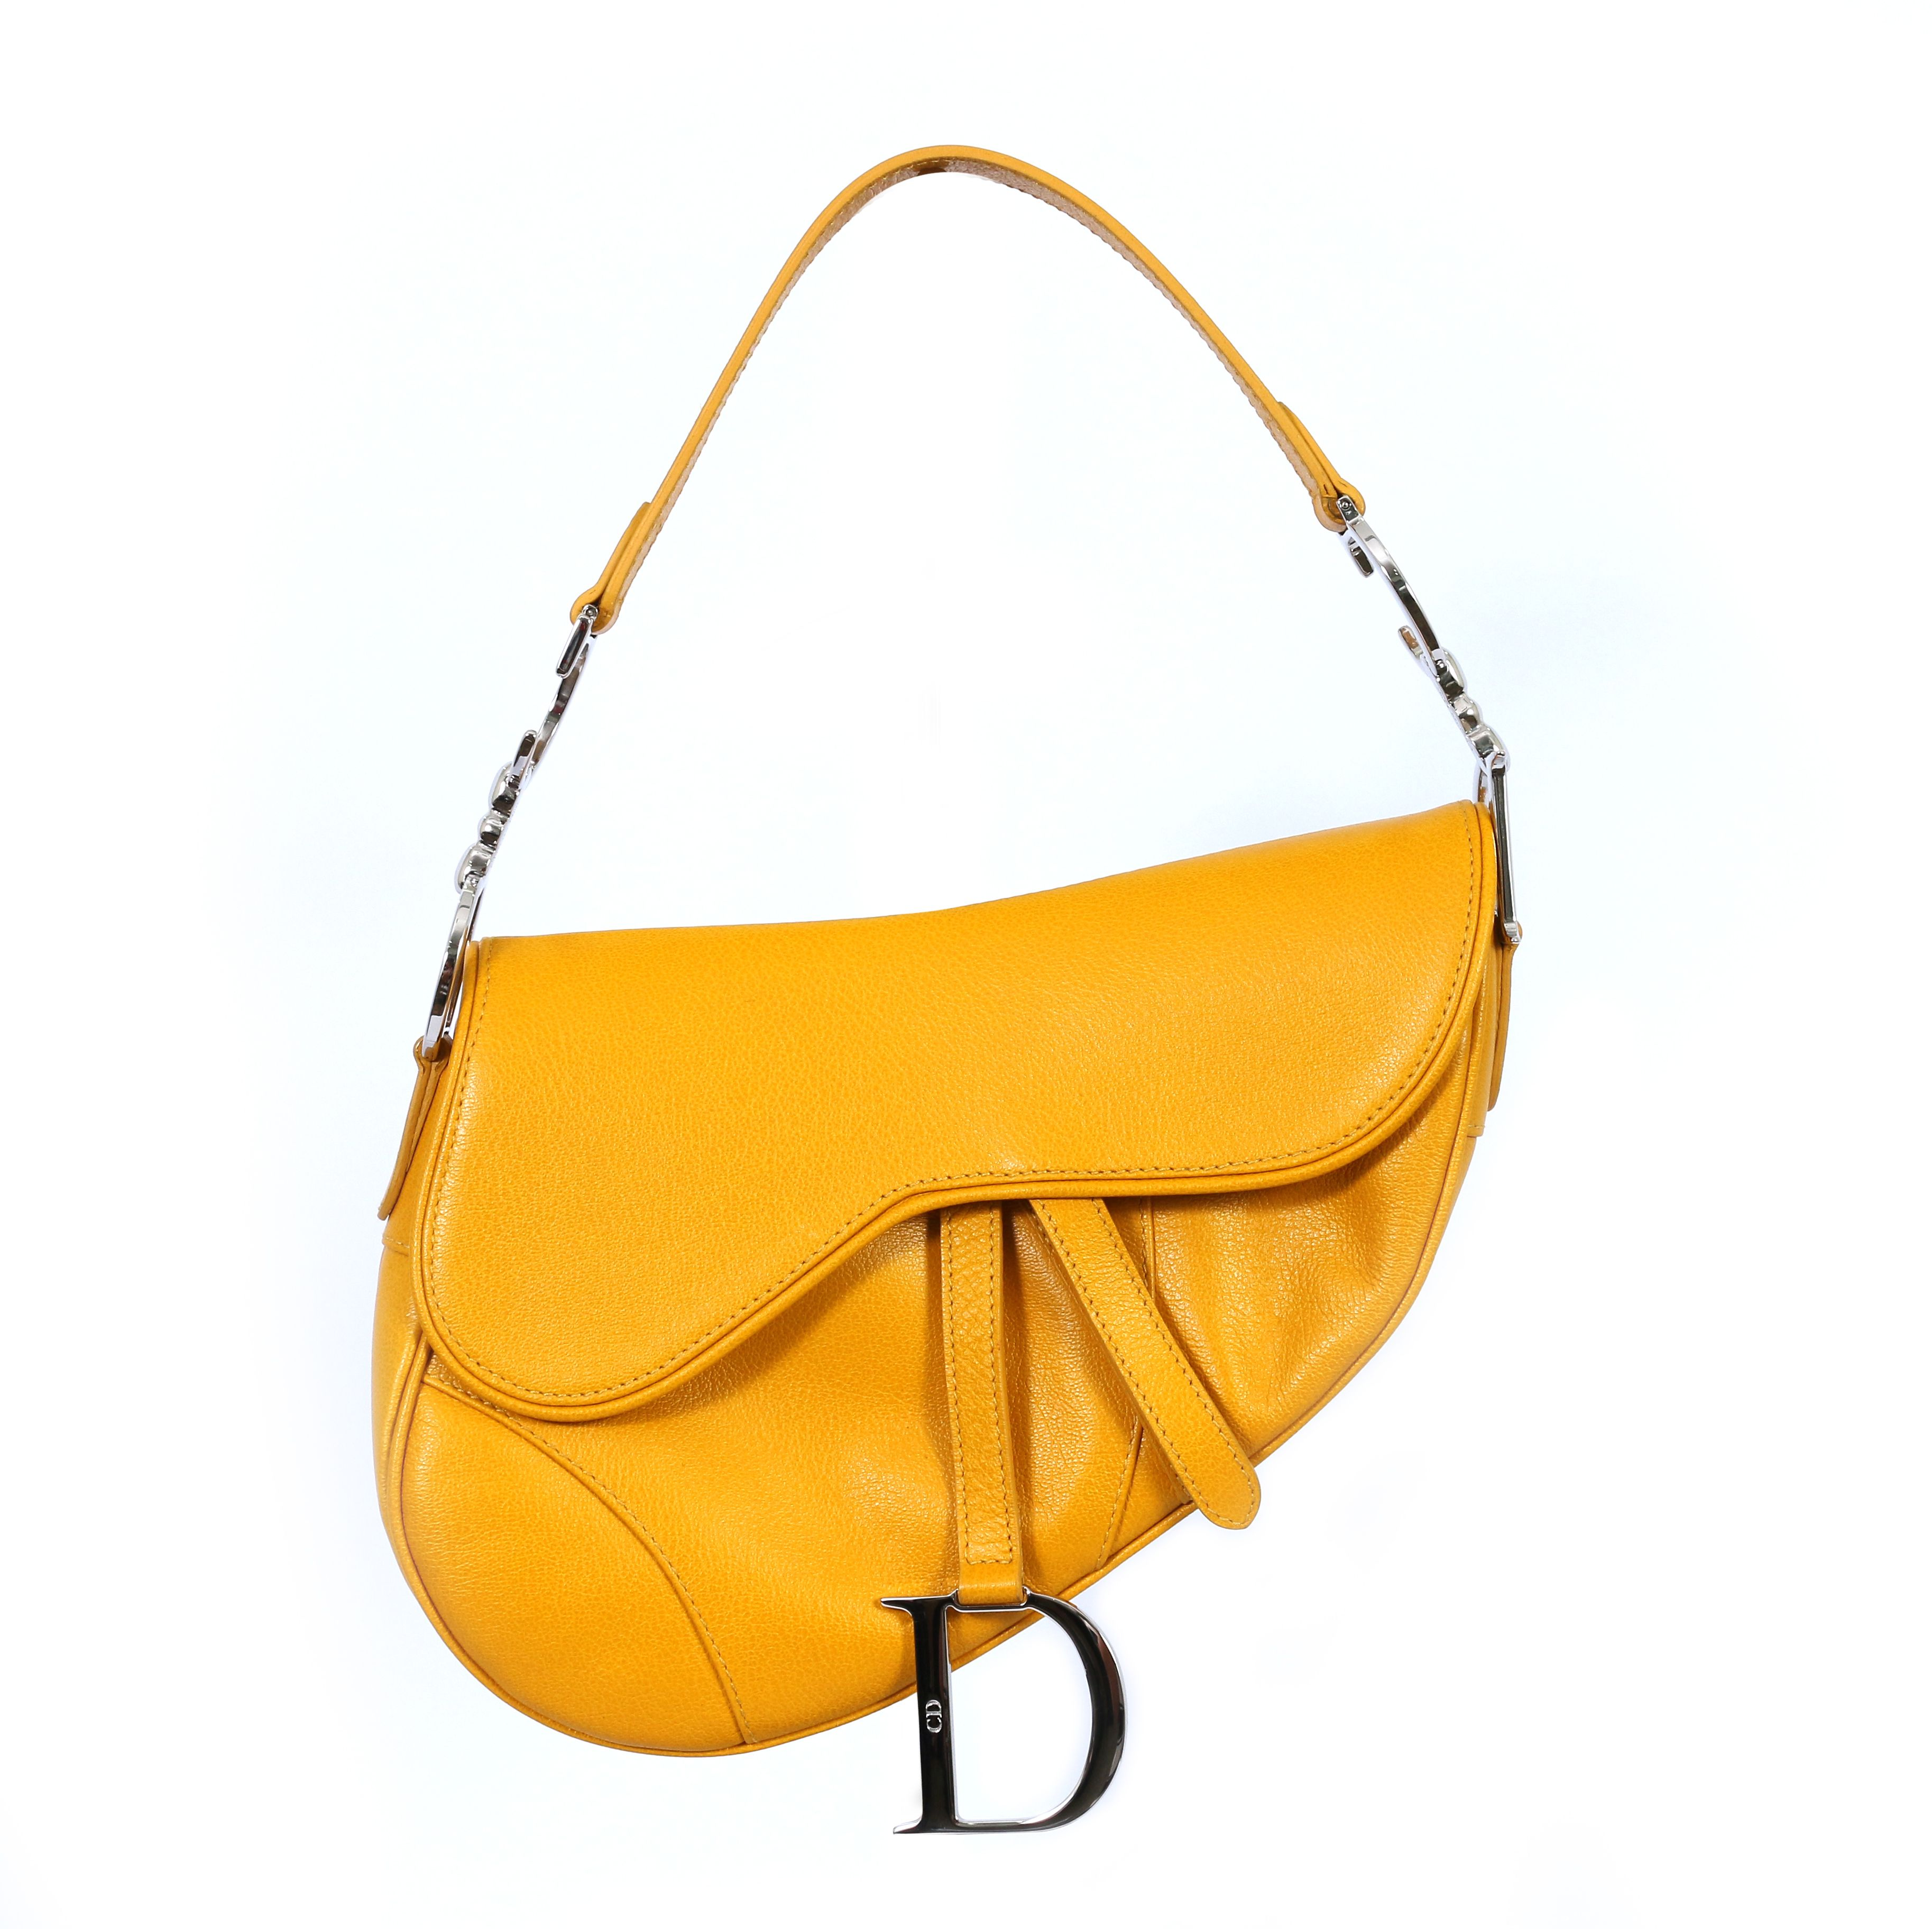 bbb42c9de629 Classic DIOR saddle bag in a colour to die for!